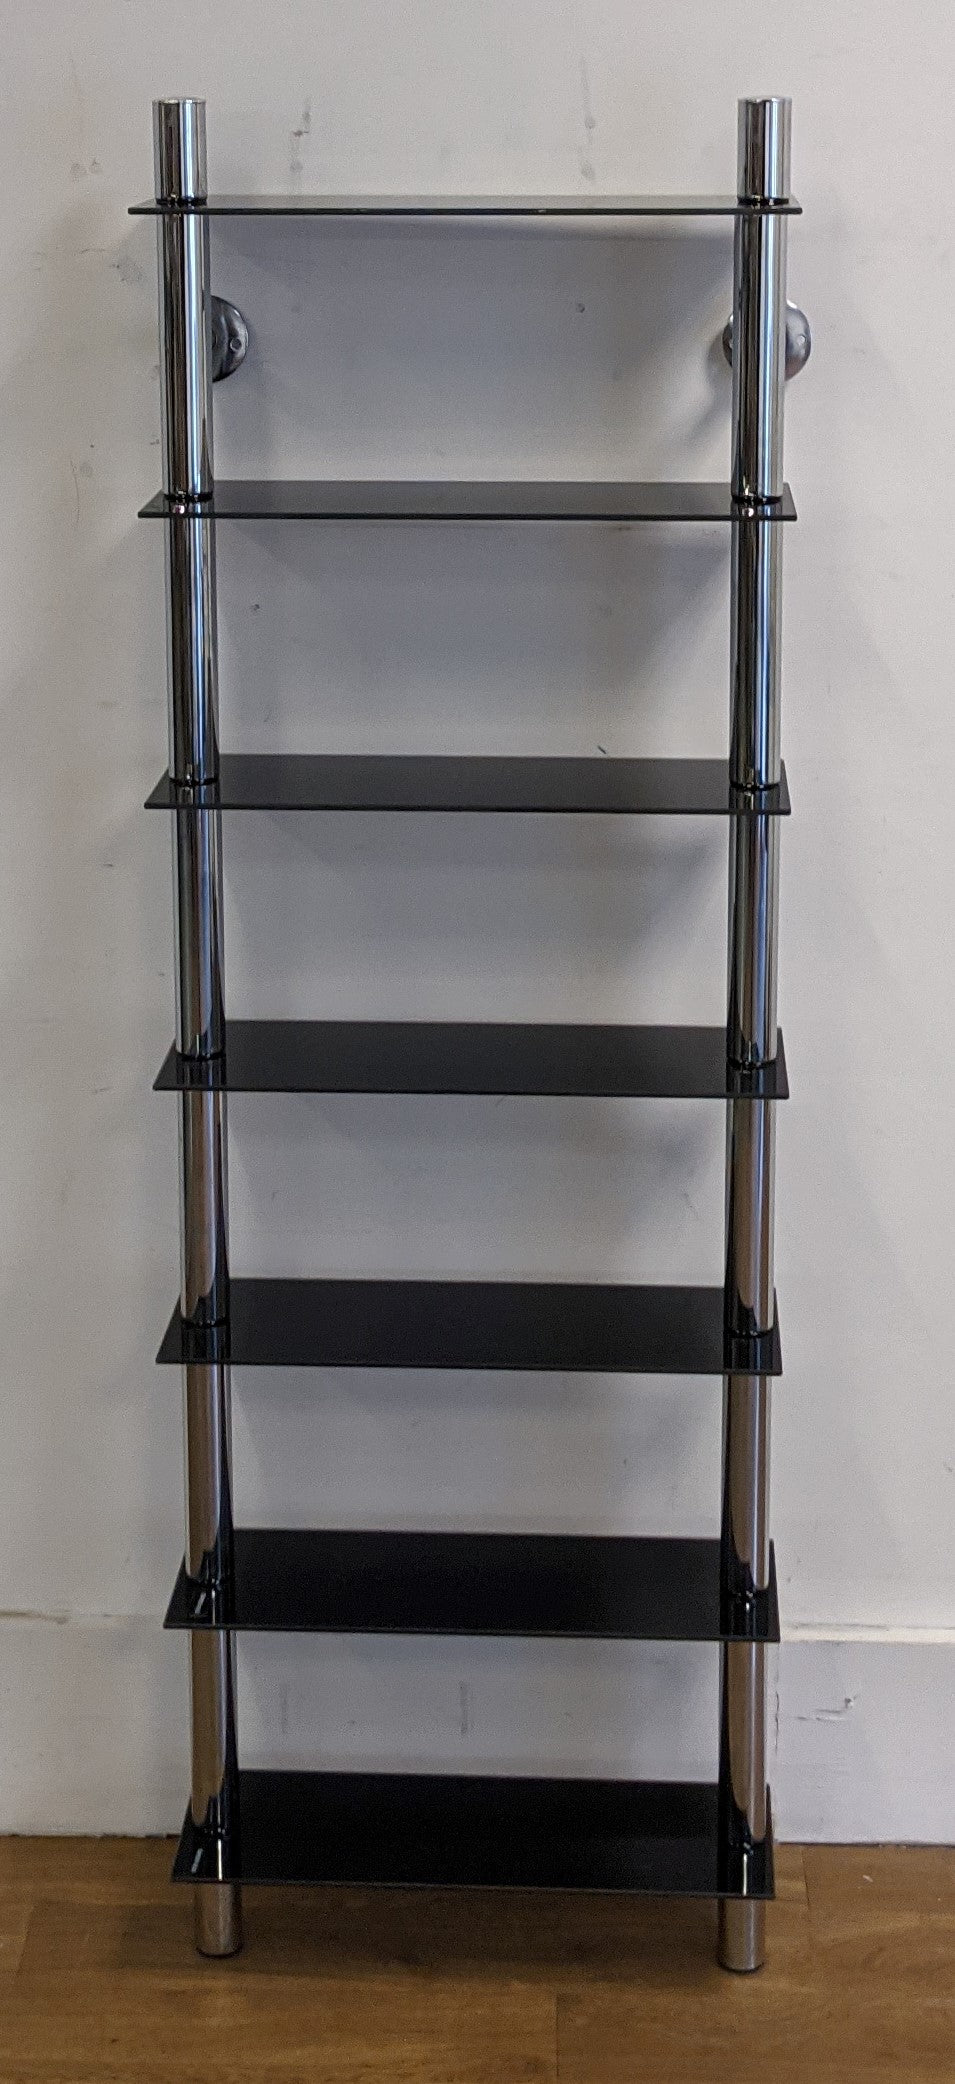 Ladder Shelving With 7 Tempered Glass Shelves, Wall Mounted - 010521-08